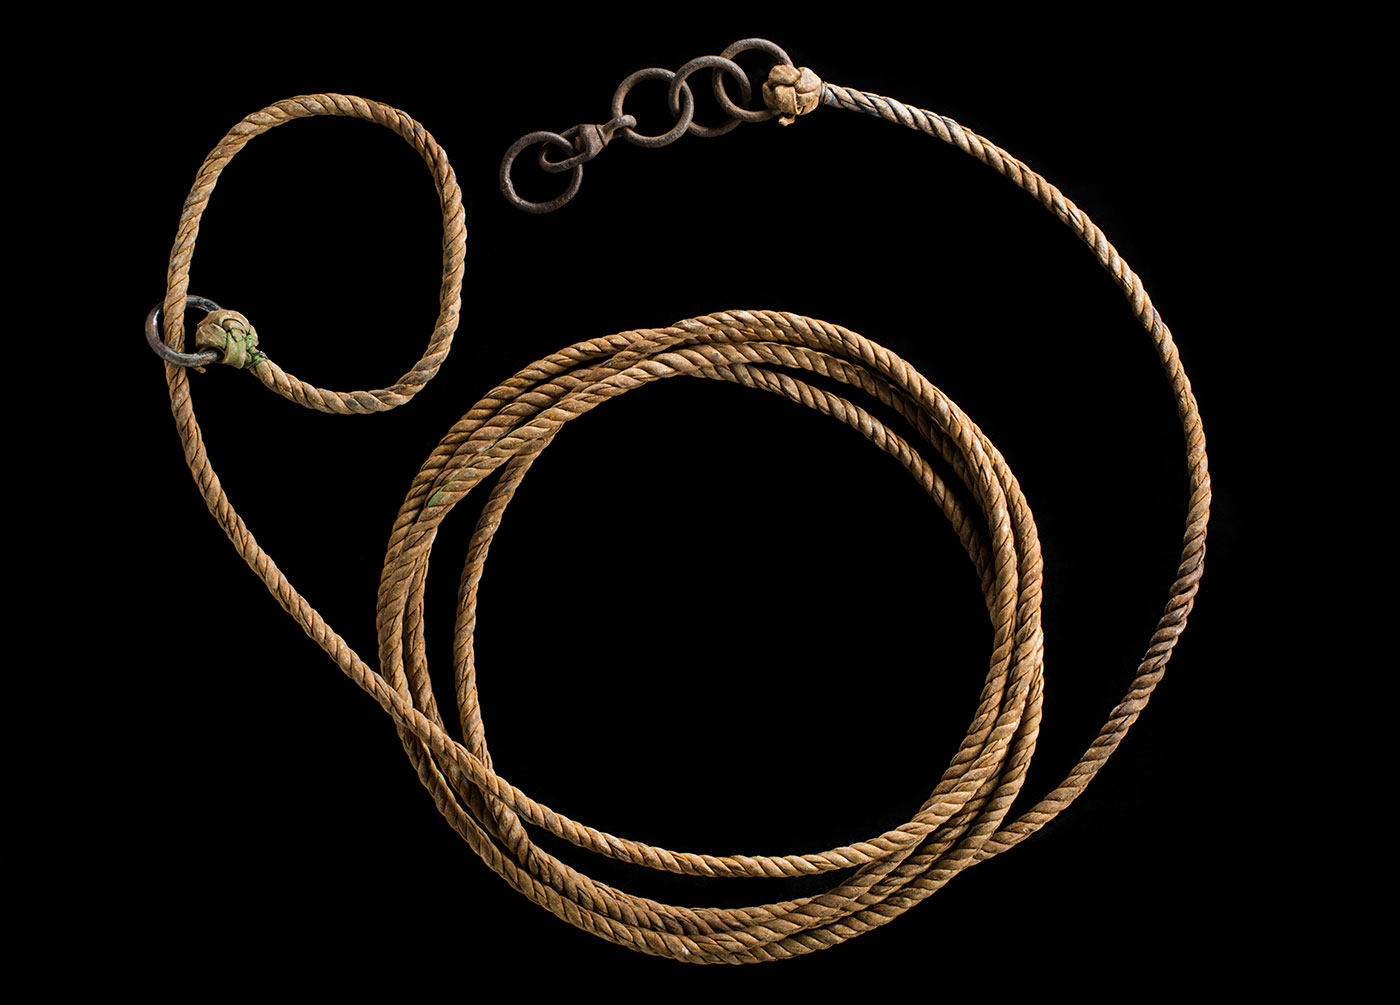 Bullock-hide rope with metal rings attached and arranged in a pleasing loop.